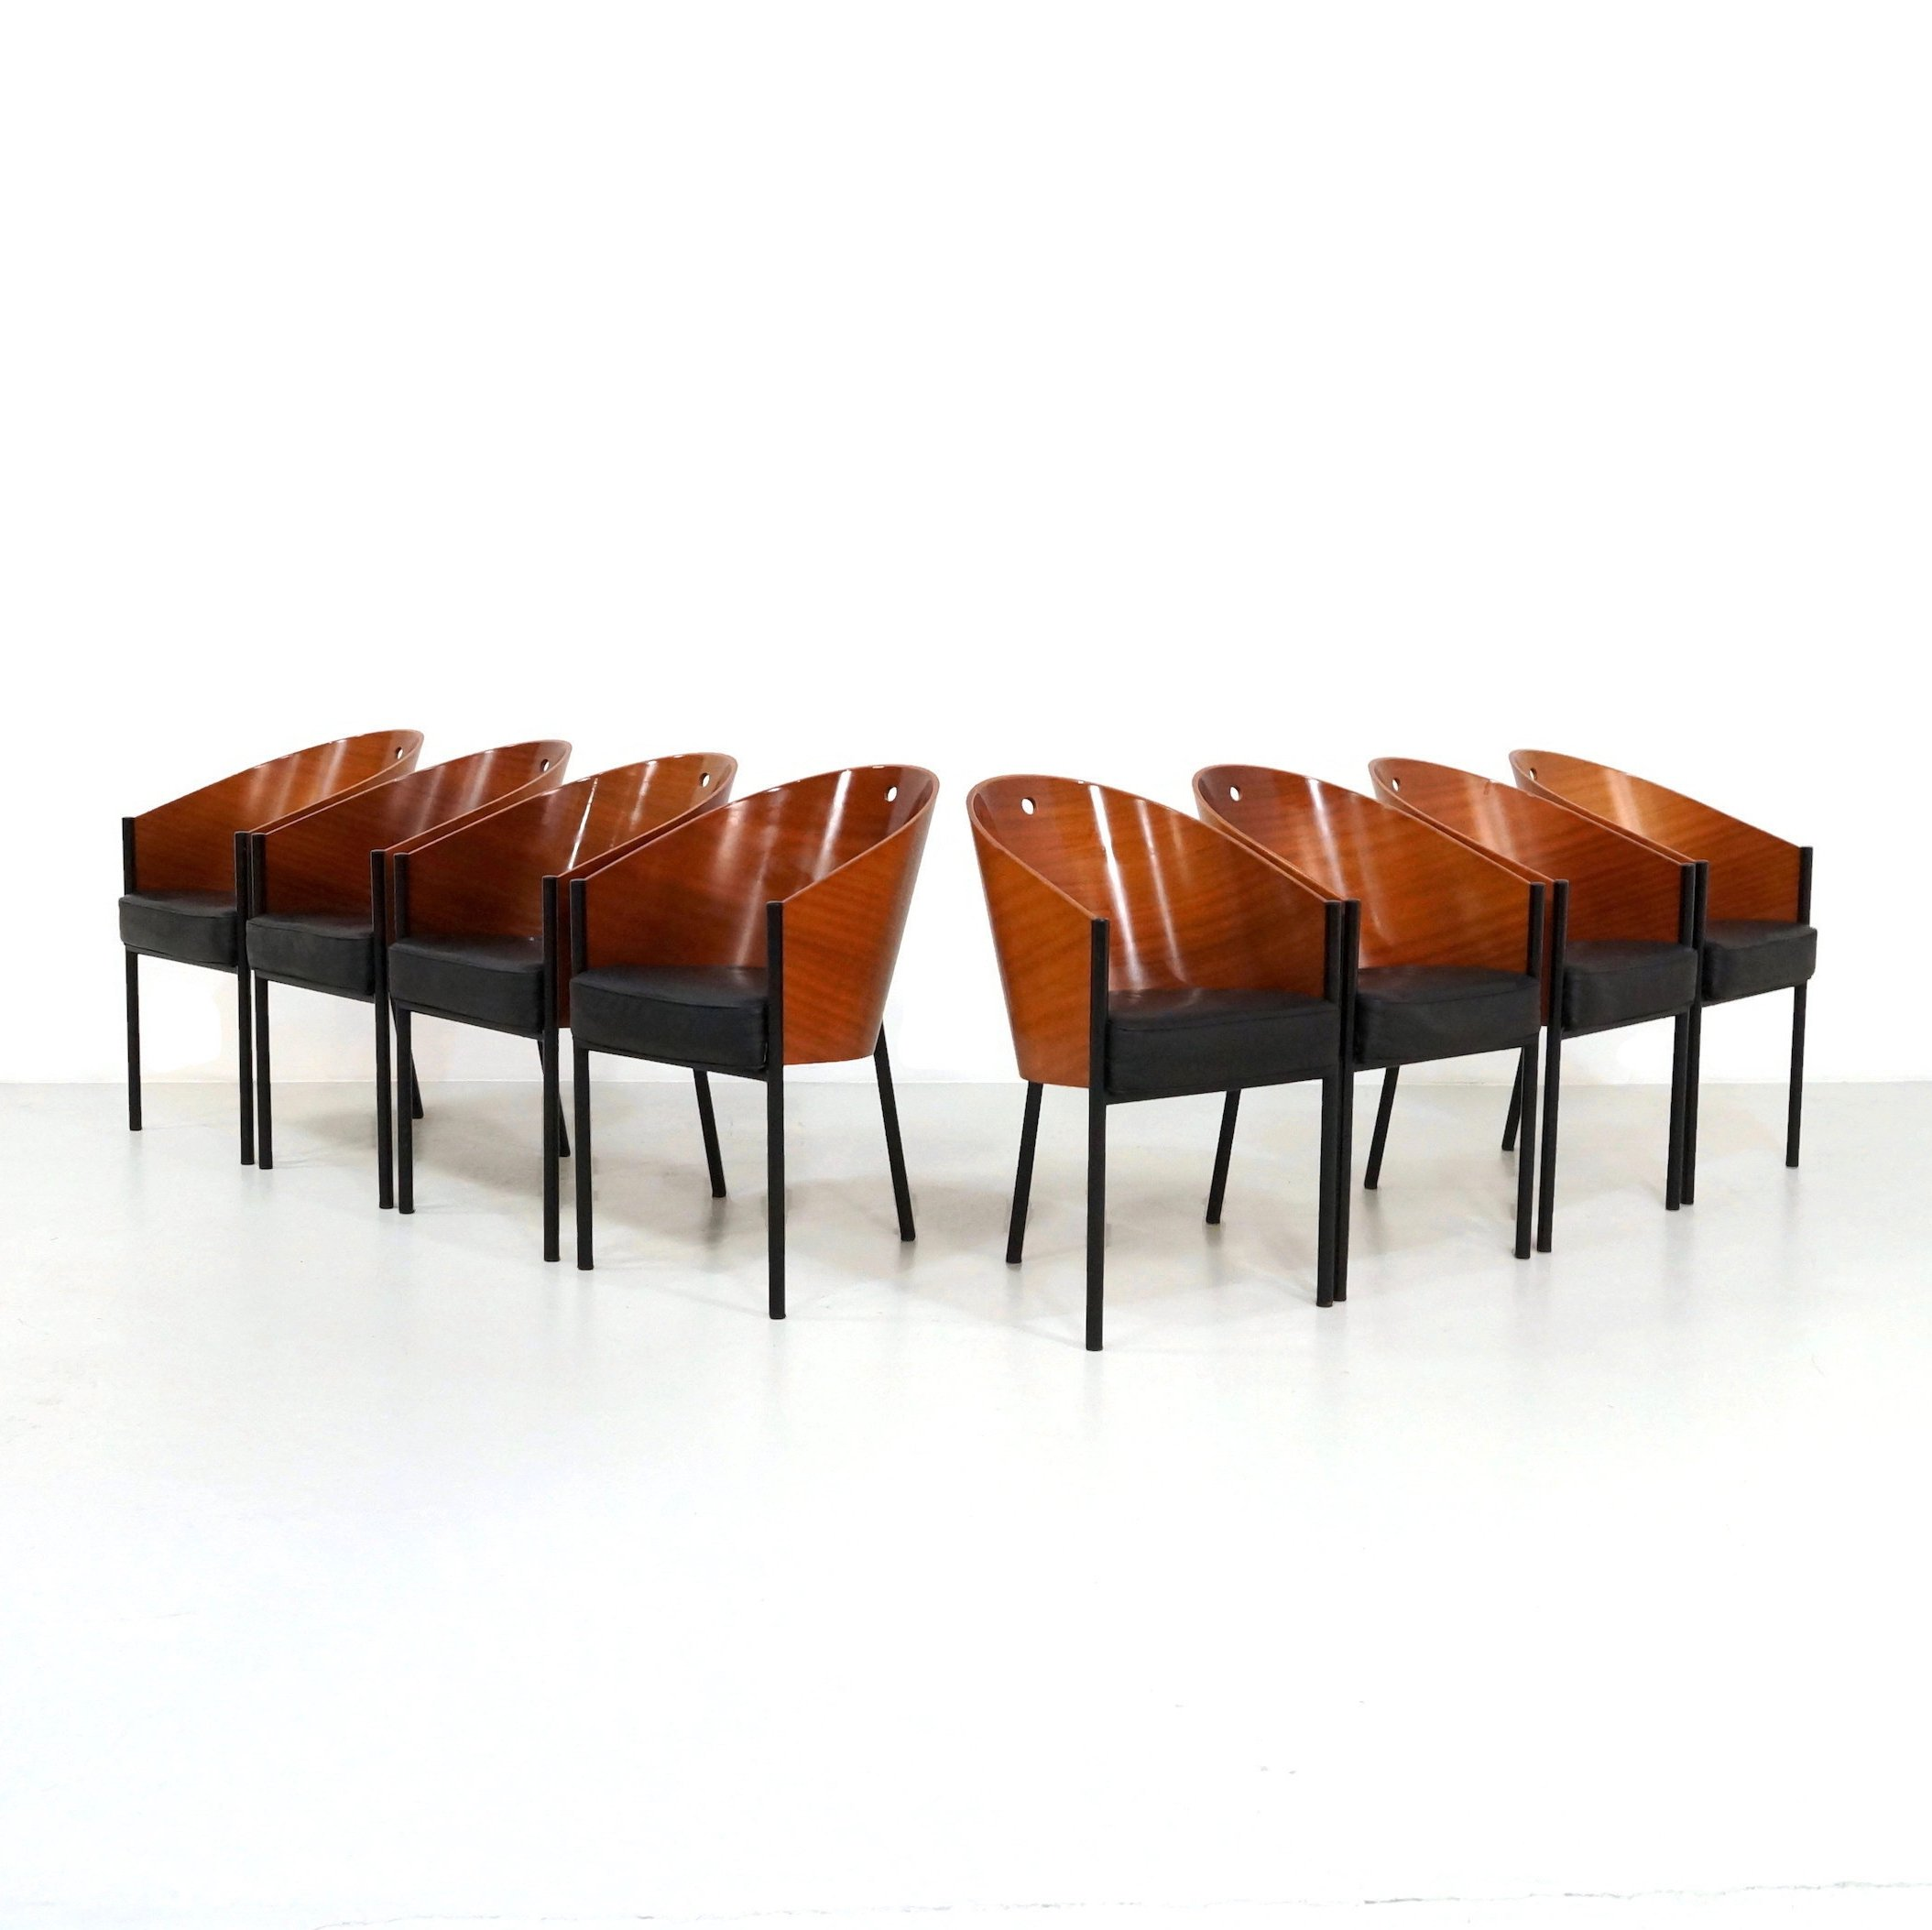 Living Room Bedroom Combo Ideas, Set Of 8 Costes Dining Chairs By Philippe Starck For Driade 1980s 121067